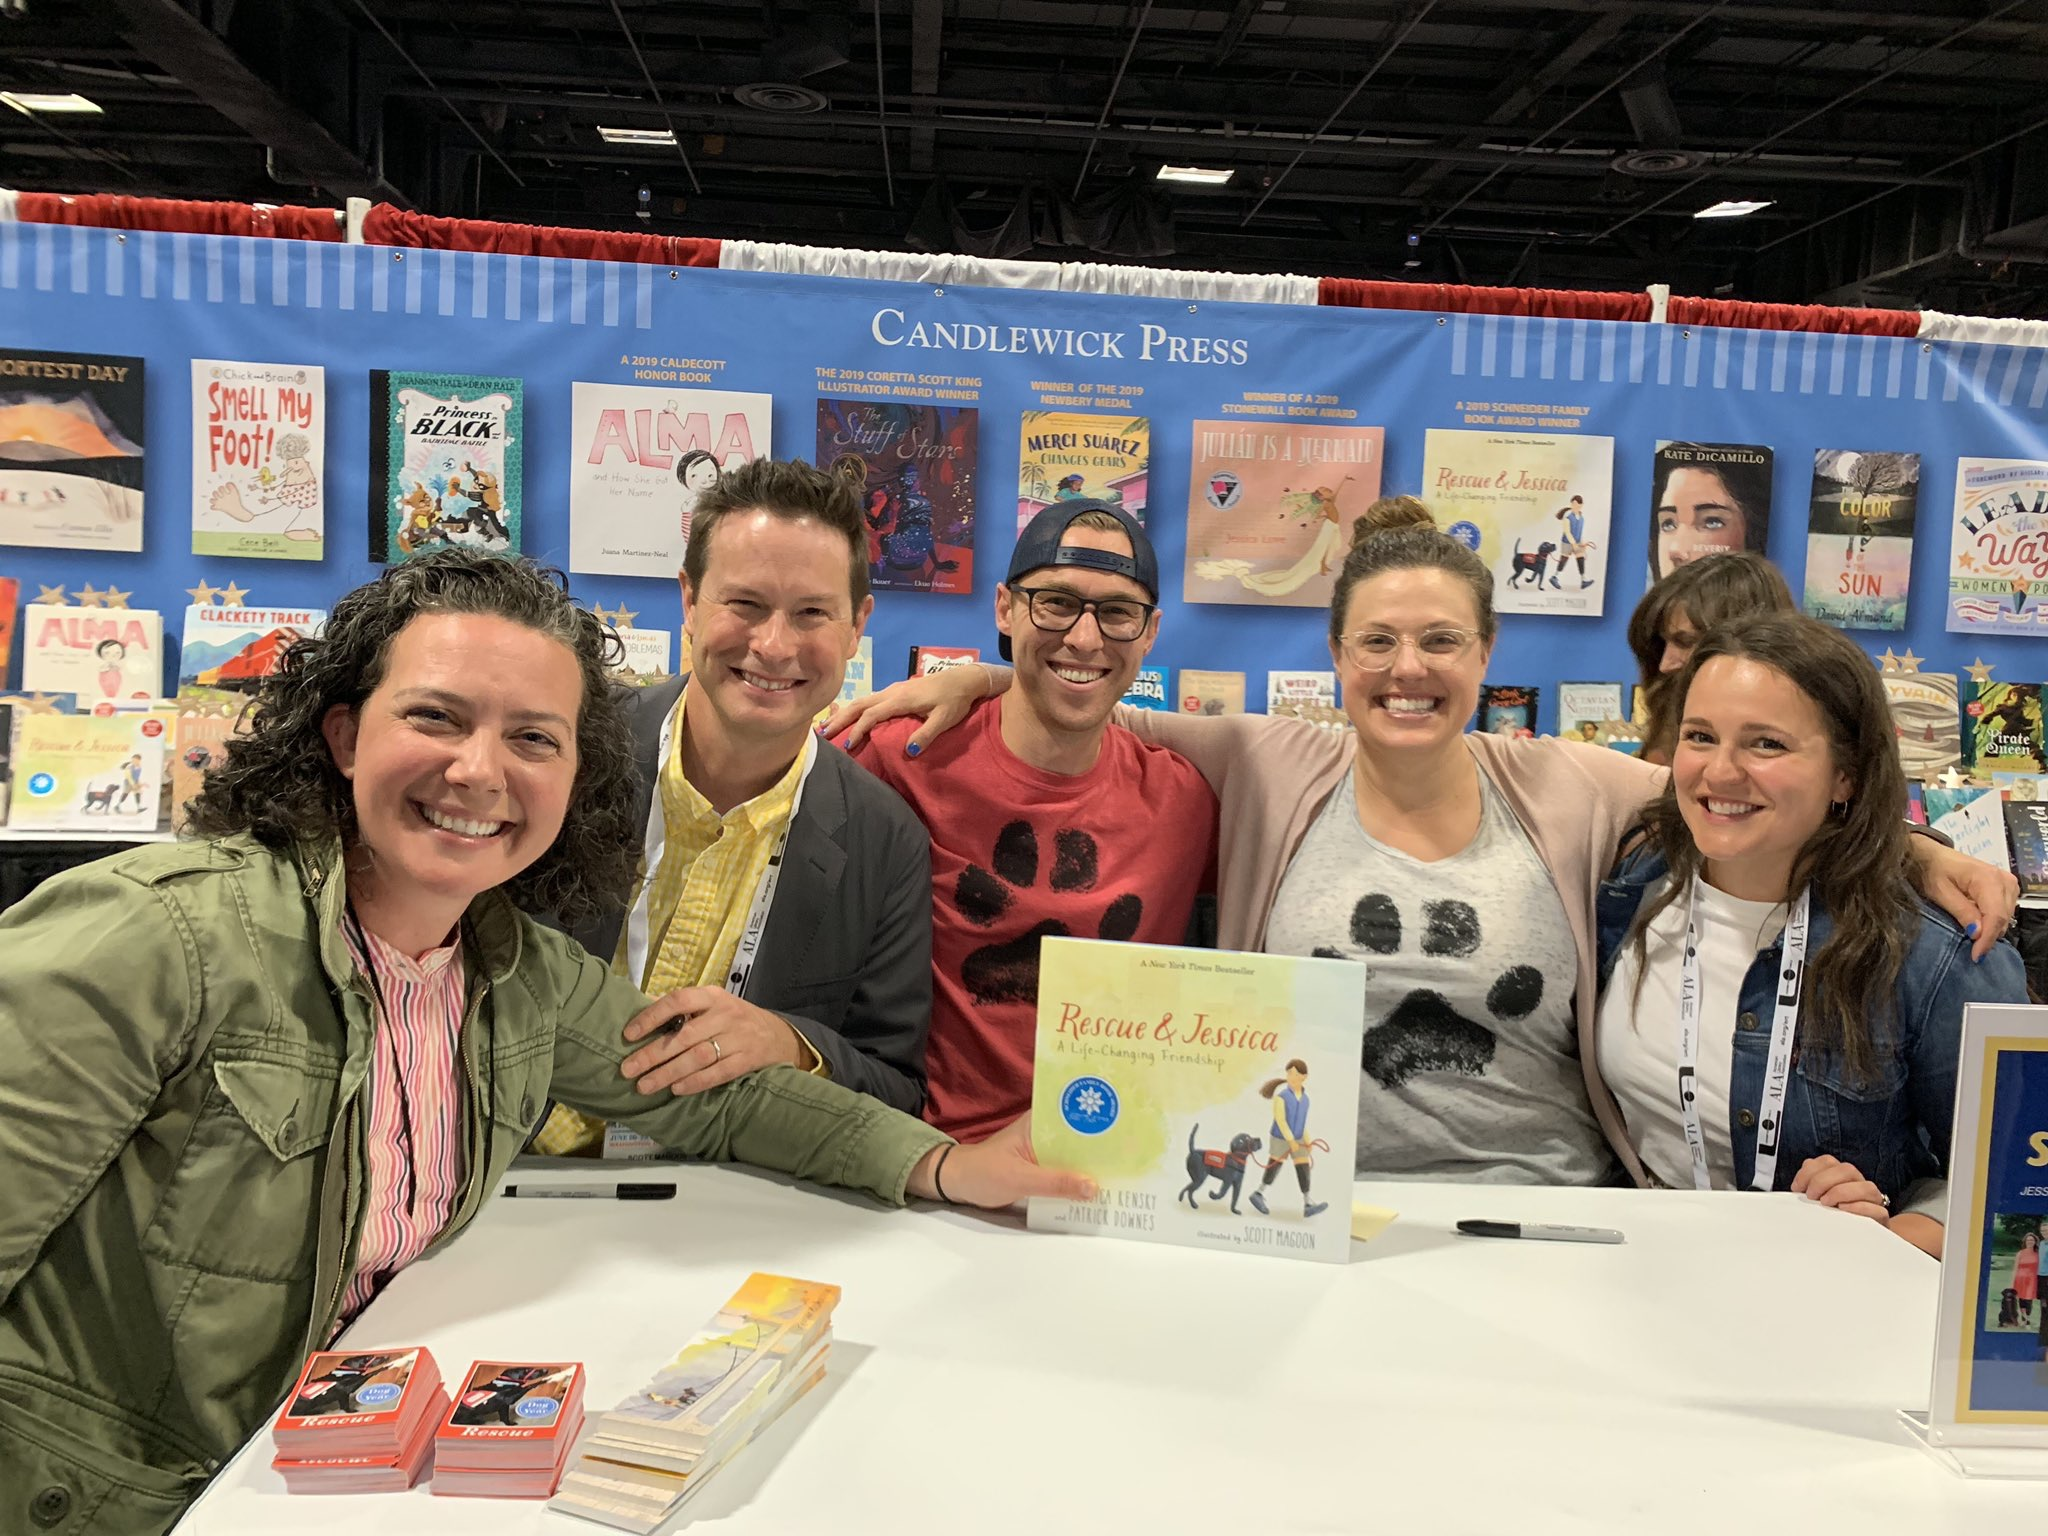 At ALA in Washington signing in the Candlewick Press booth with editor Katie Cunningham, Me, Patrick, Jessica and Patrick and Jessica's agent Clelia Gore!